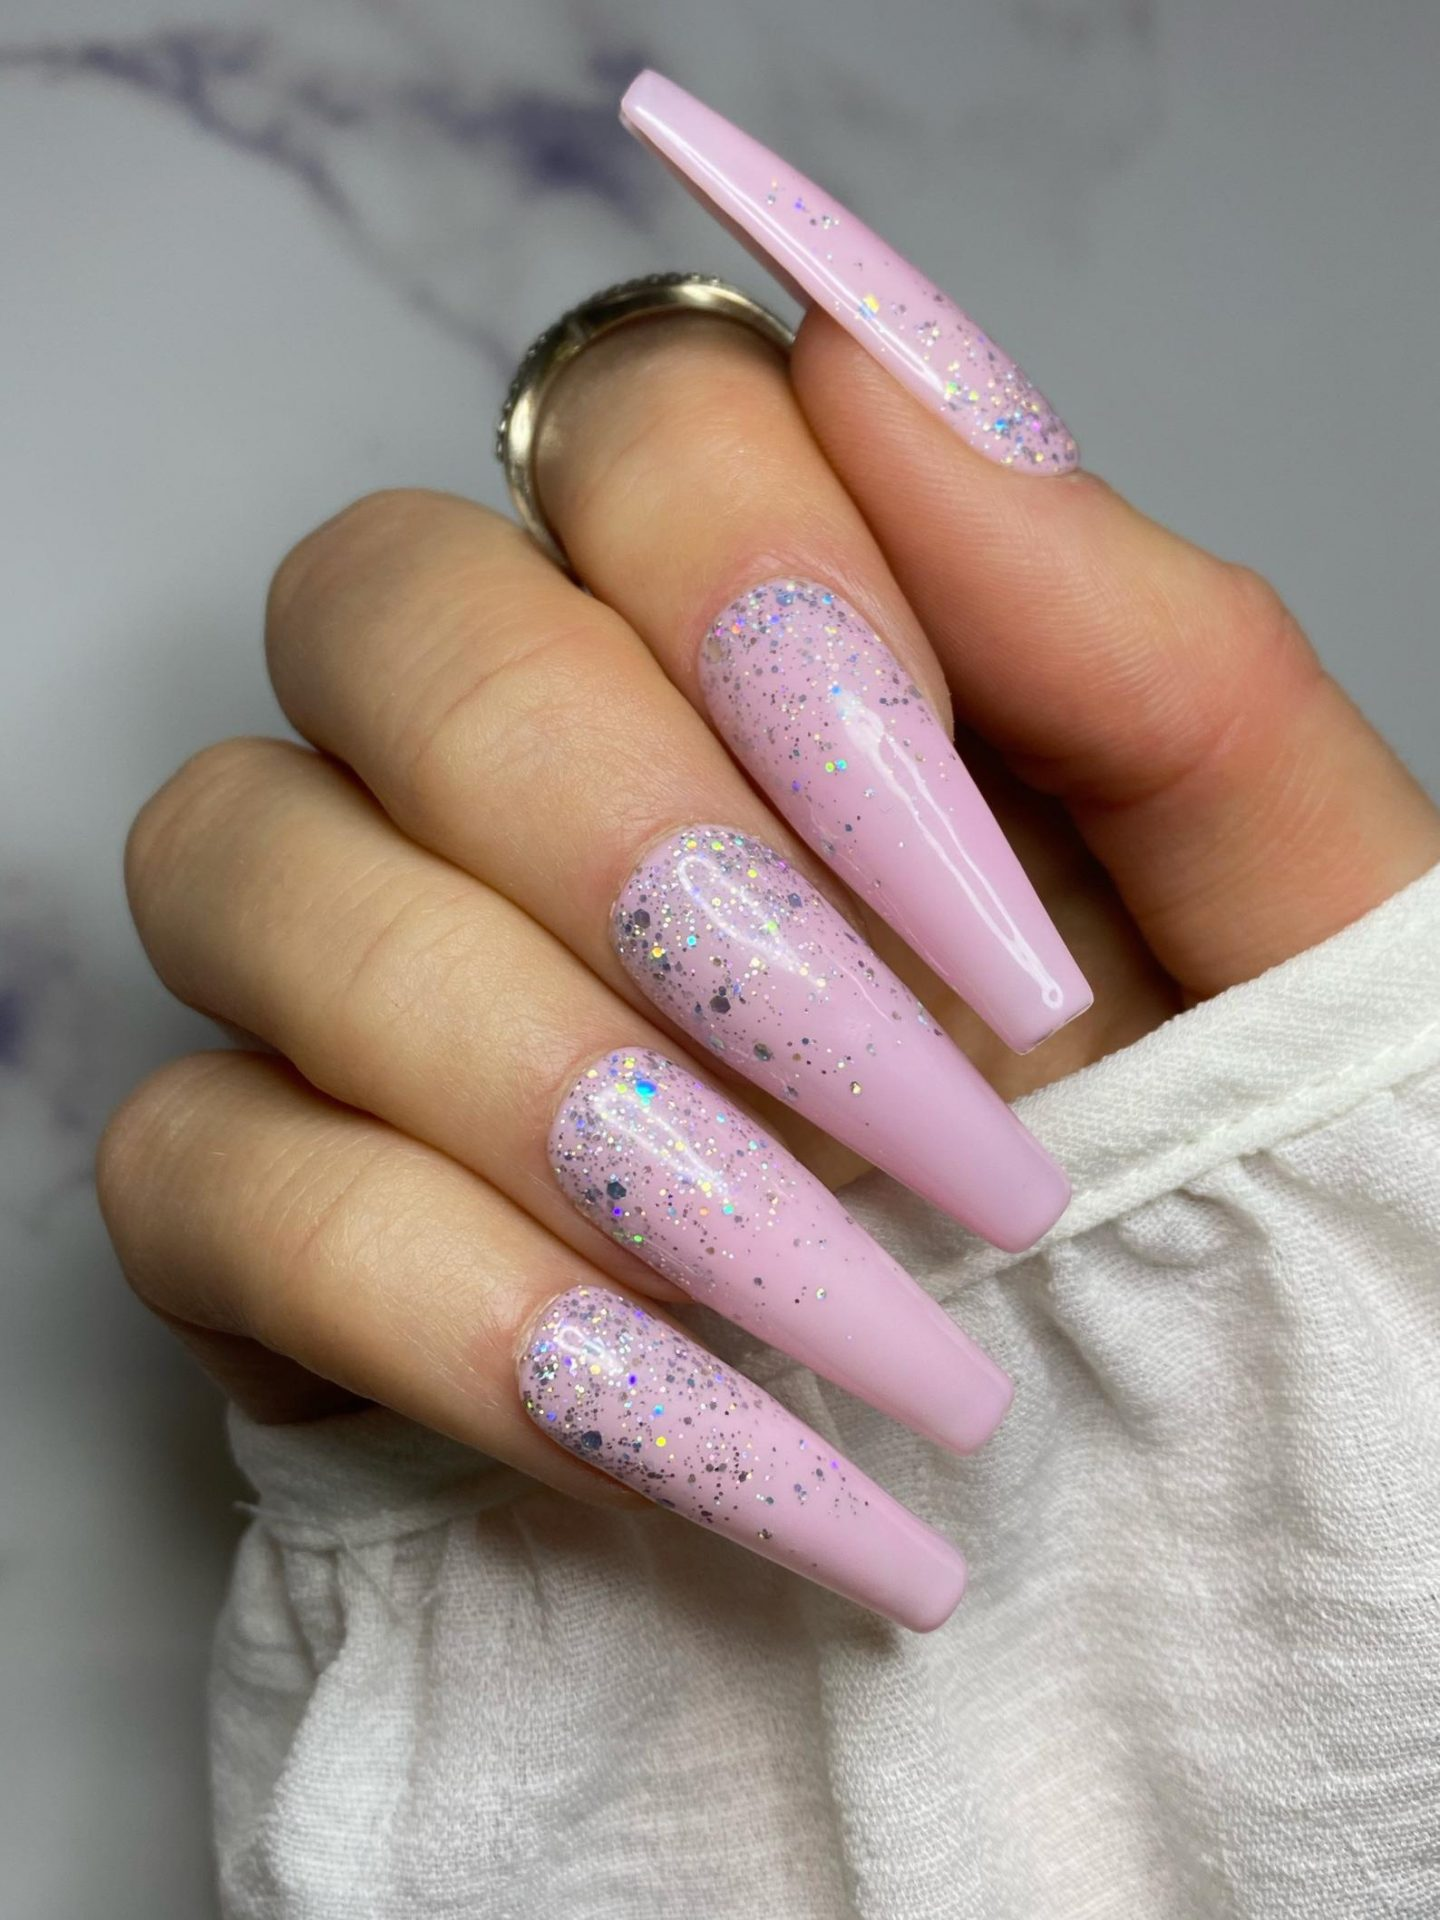 Long light pink nails with glitter